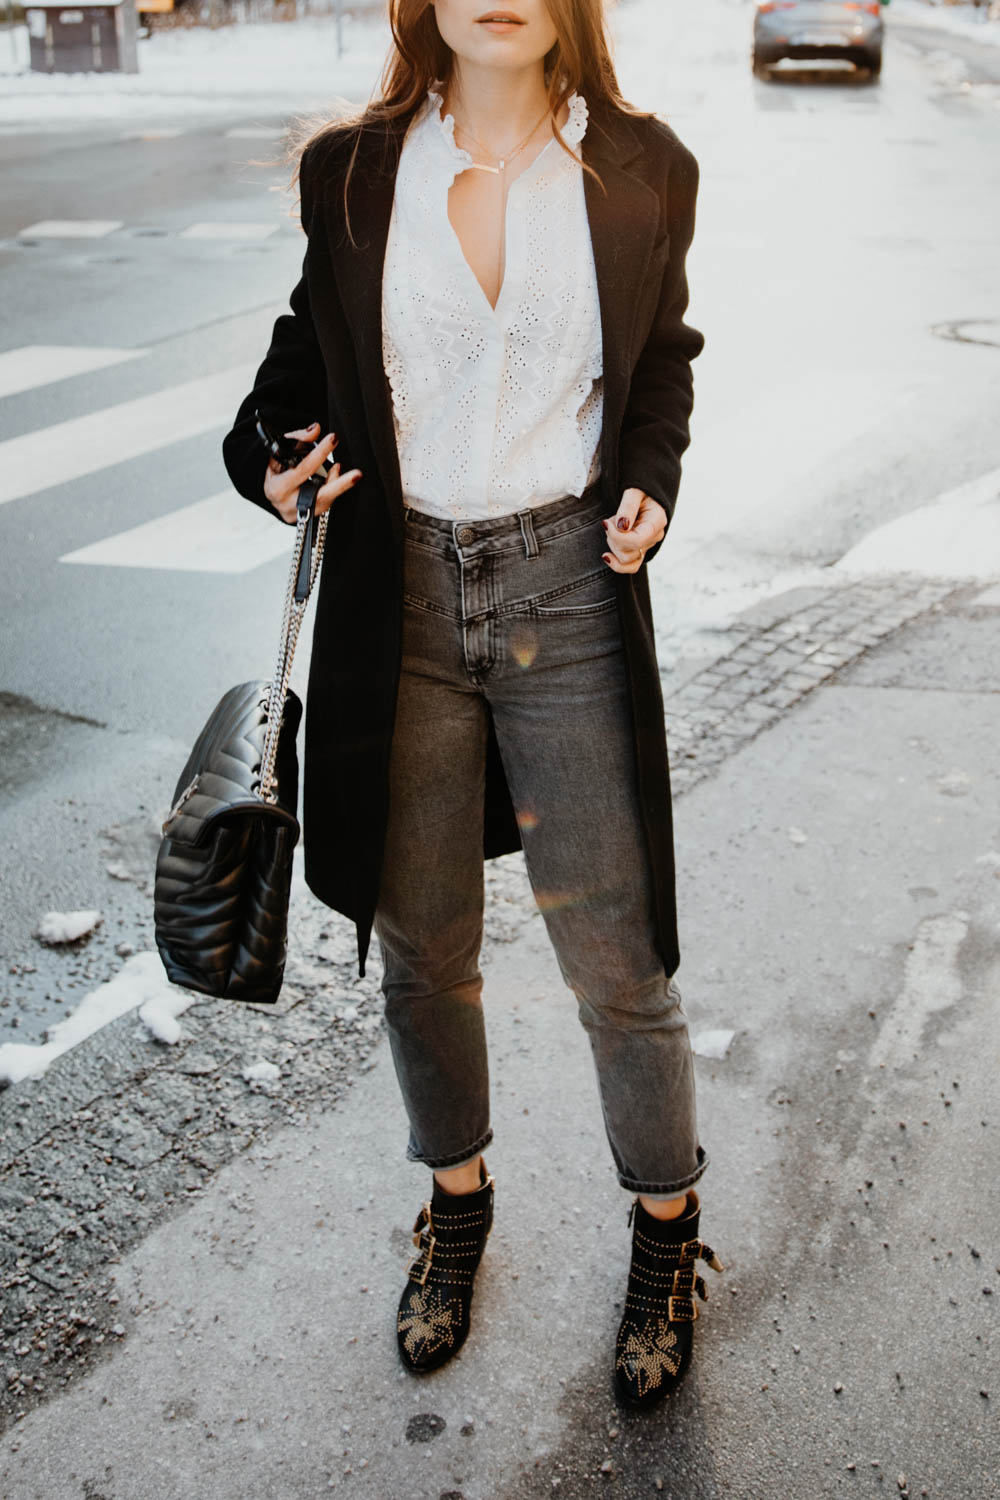 OUTFIT: Chloé Susanna Boots, Saint Laurent Lou Lou Bag, Closed Pedal Pusher Jeans. Sandro Coat | Lent | you rock my life